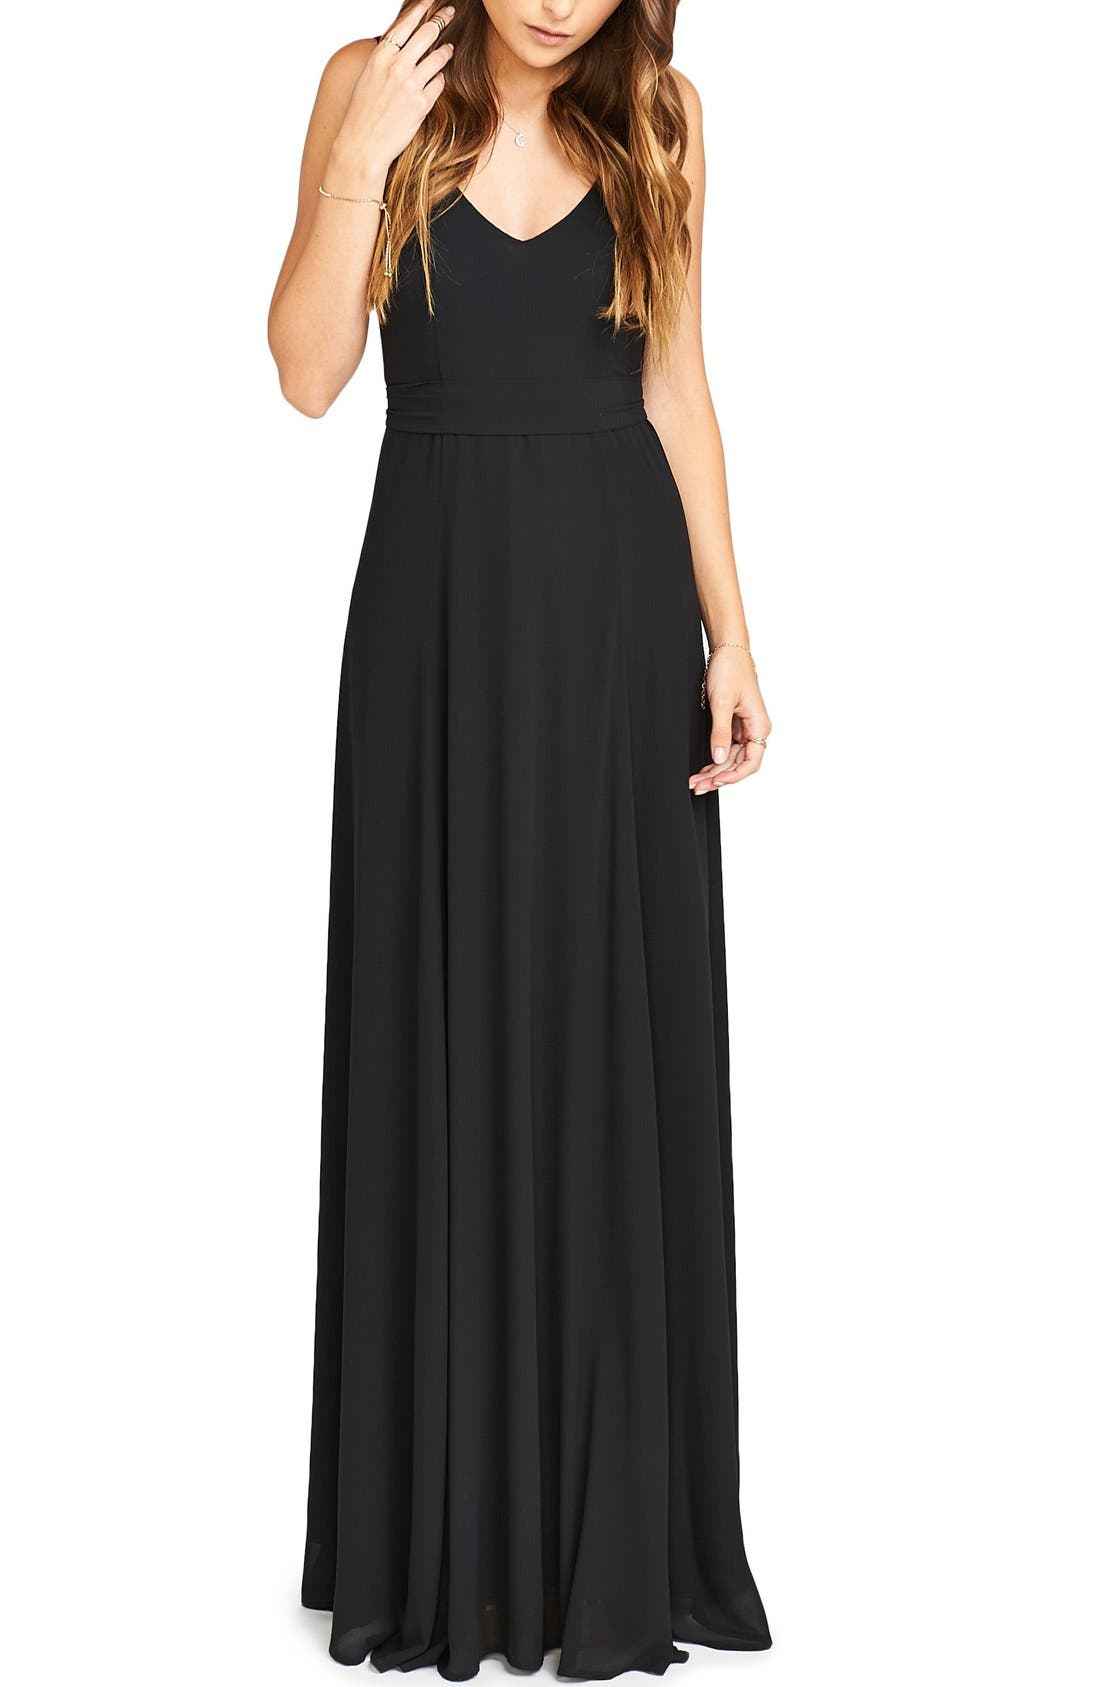 Black flowing dresses